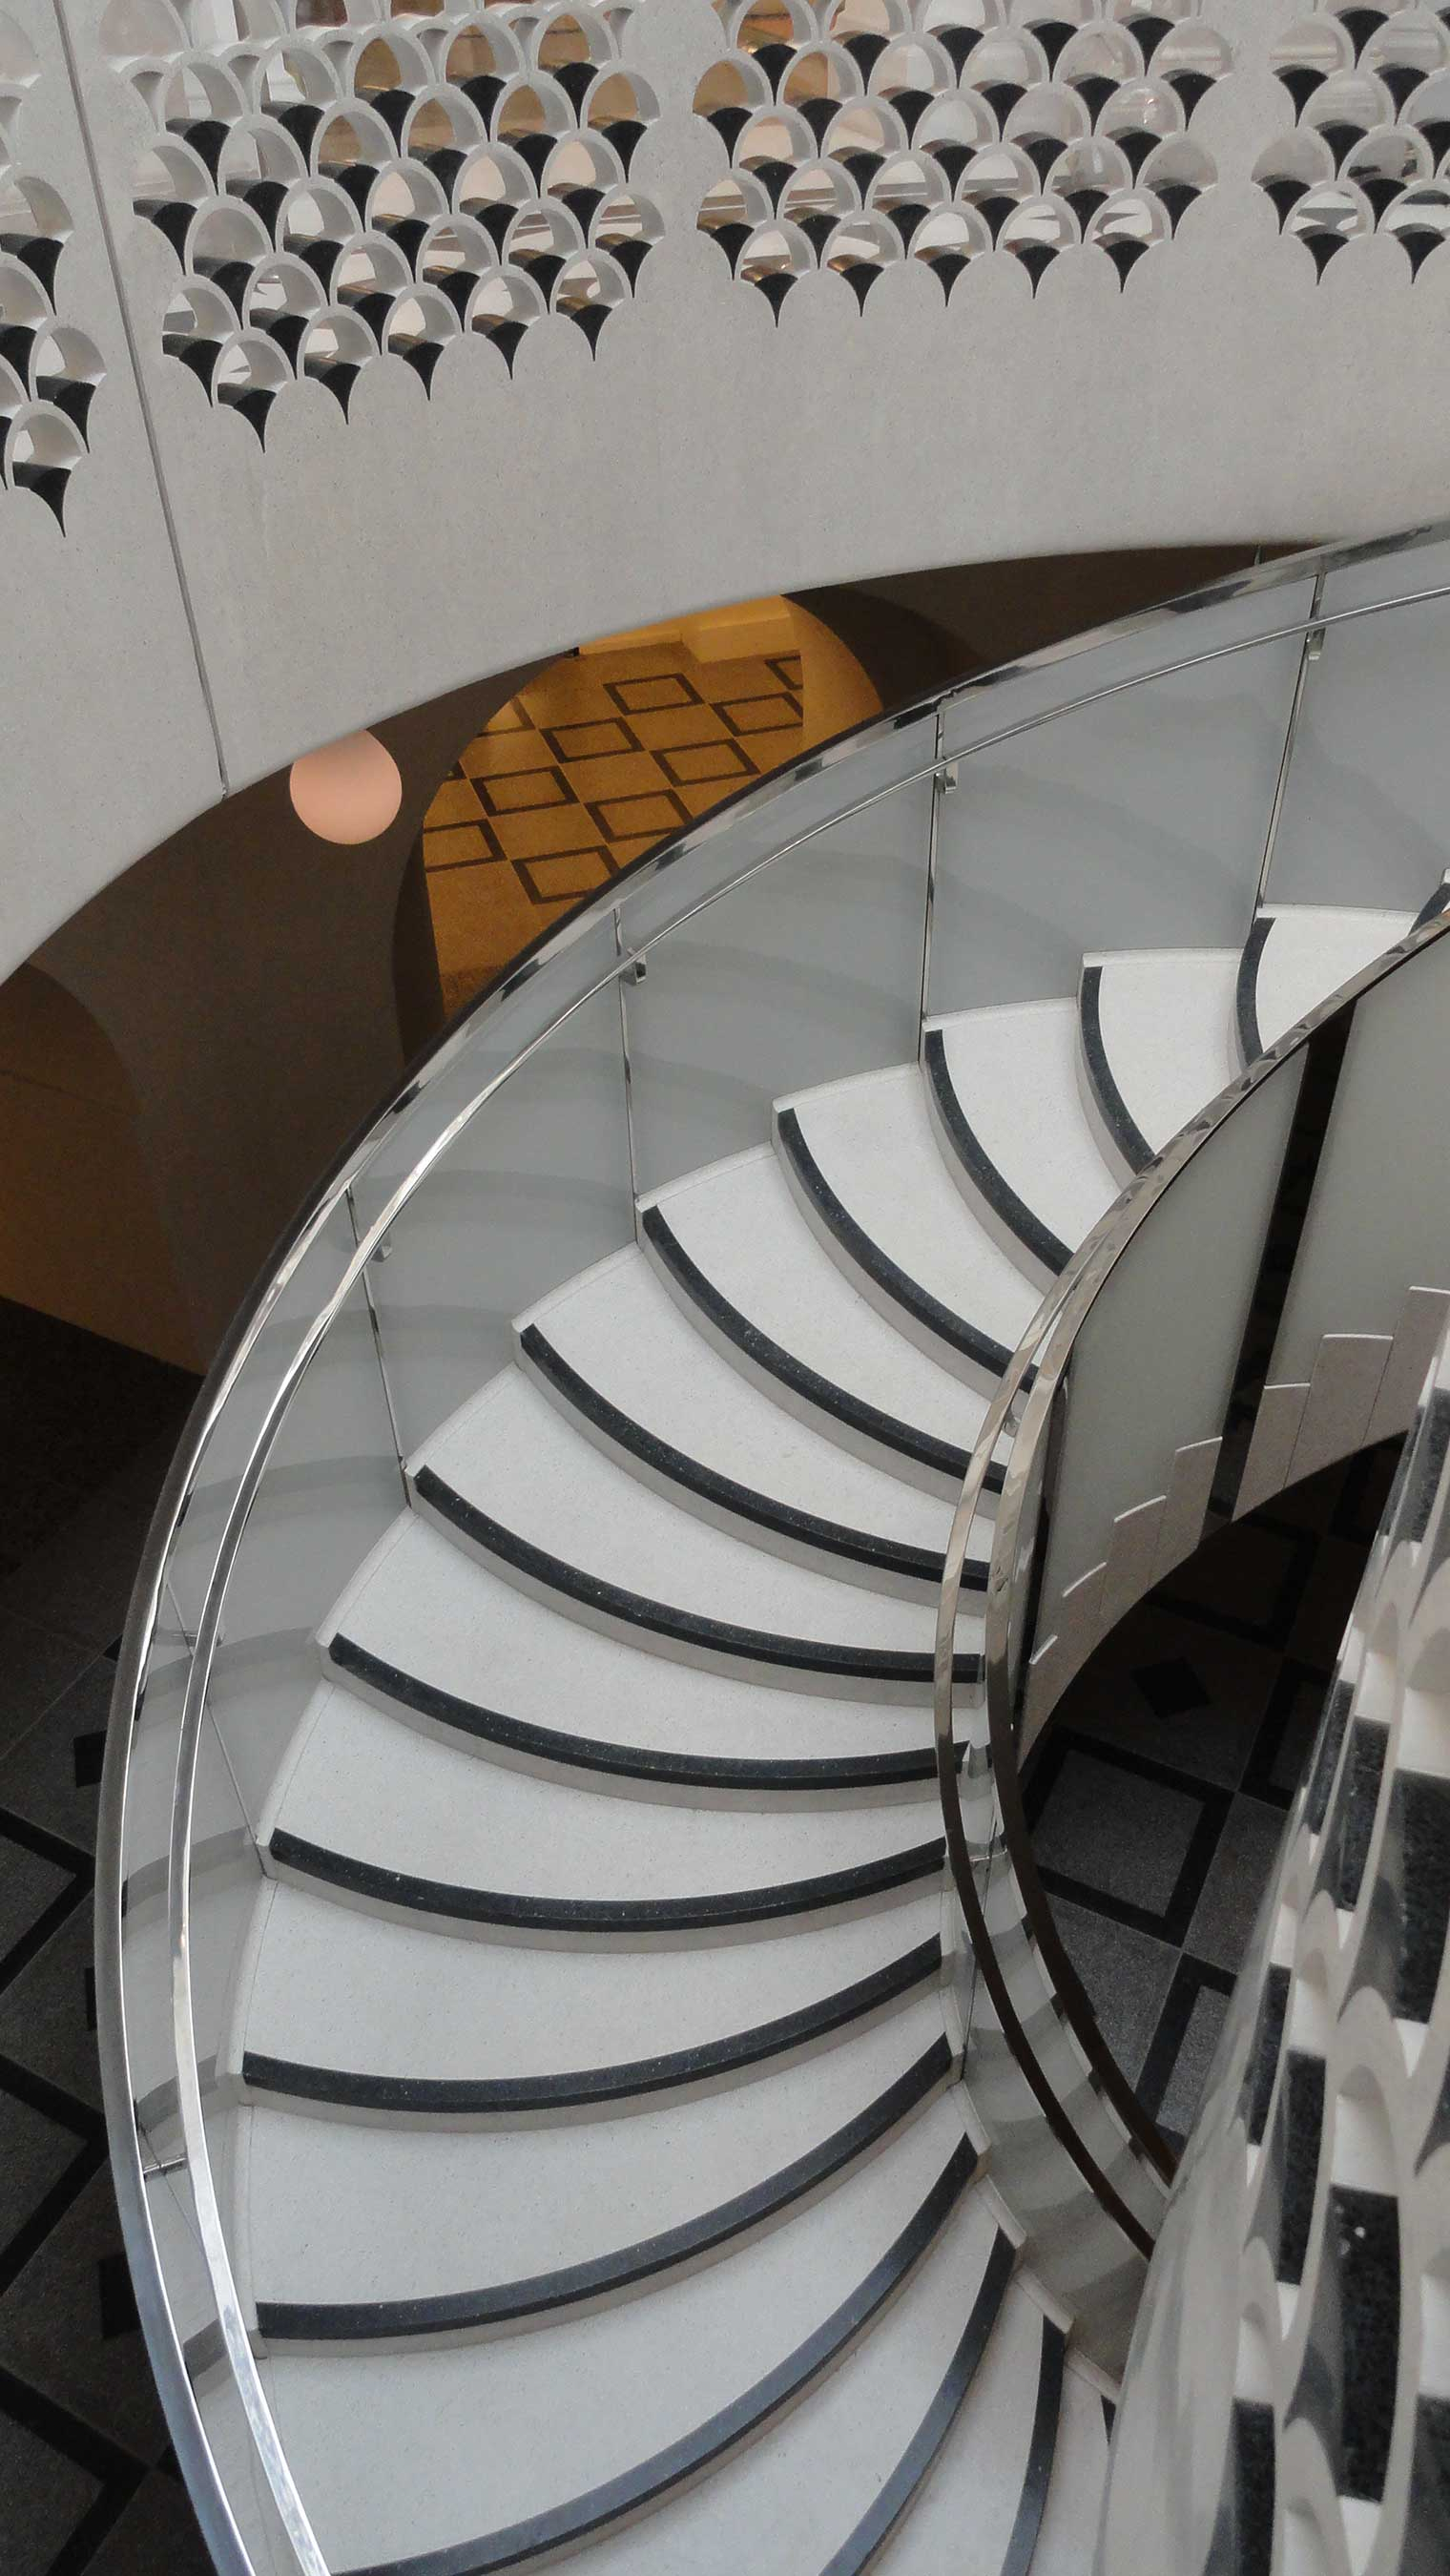 Bespoke Spiral Glass Staircase Balustrade, Tate Britain